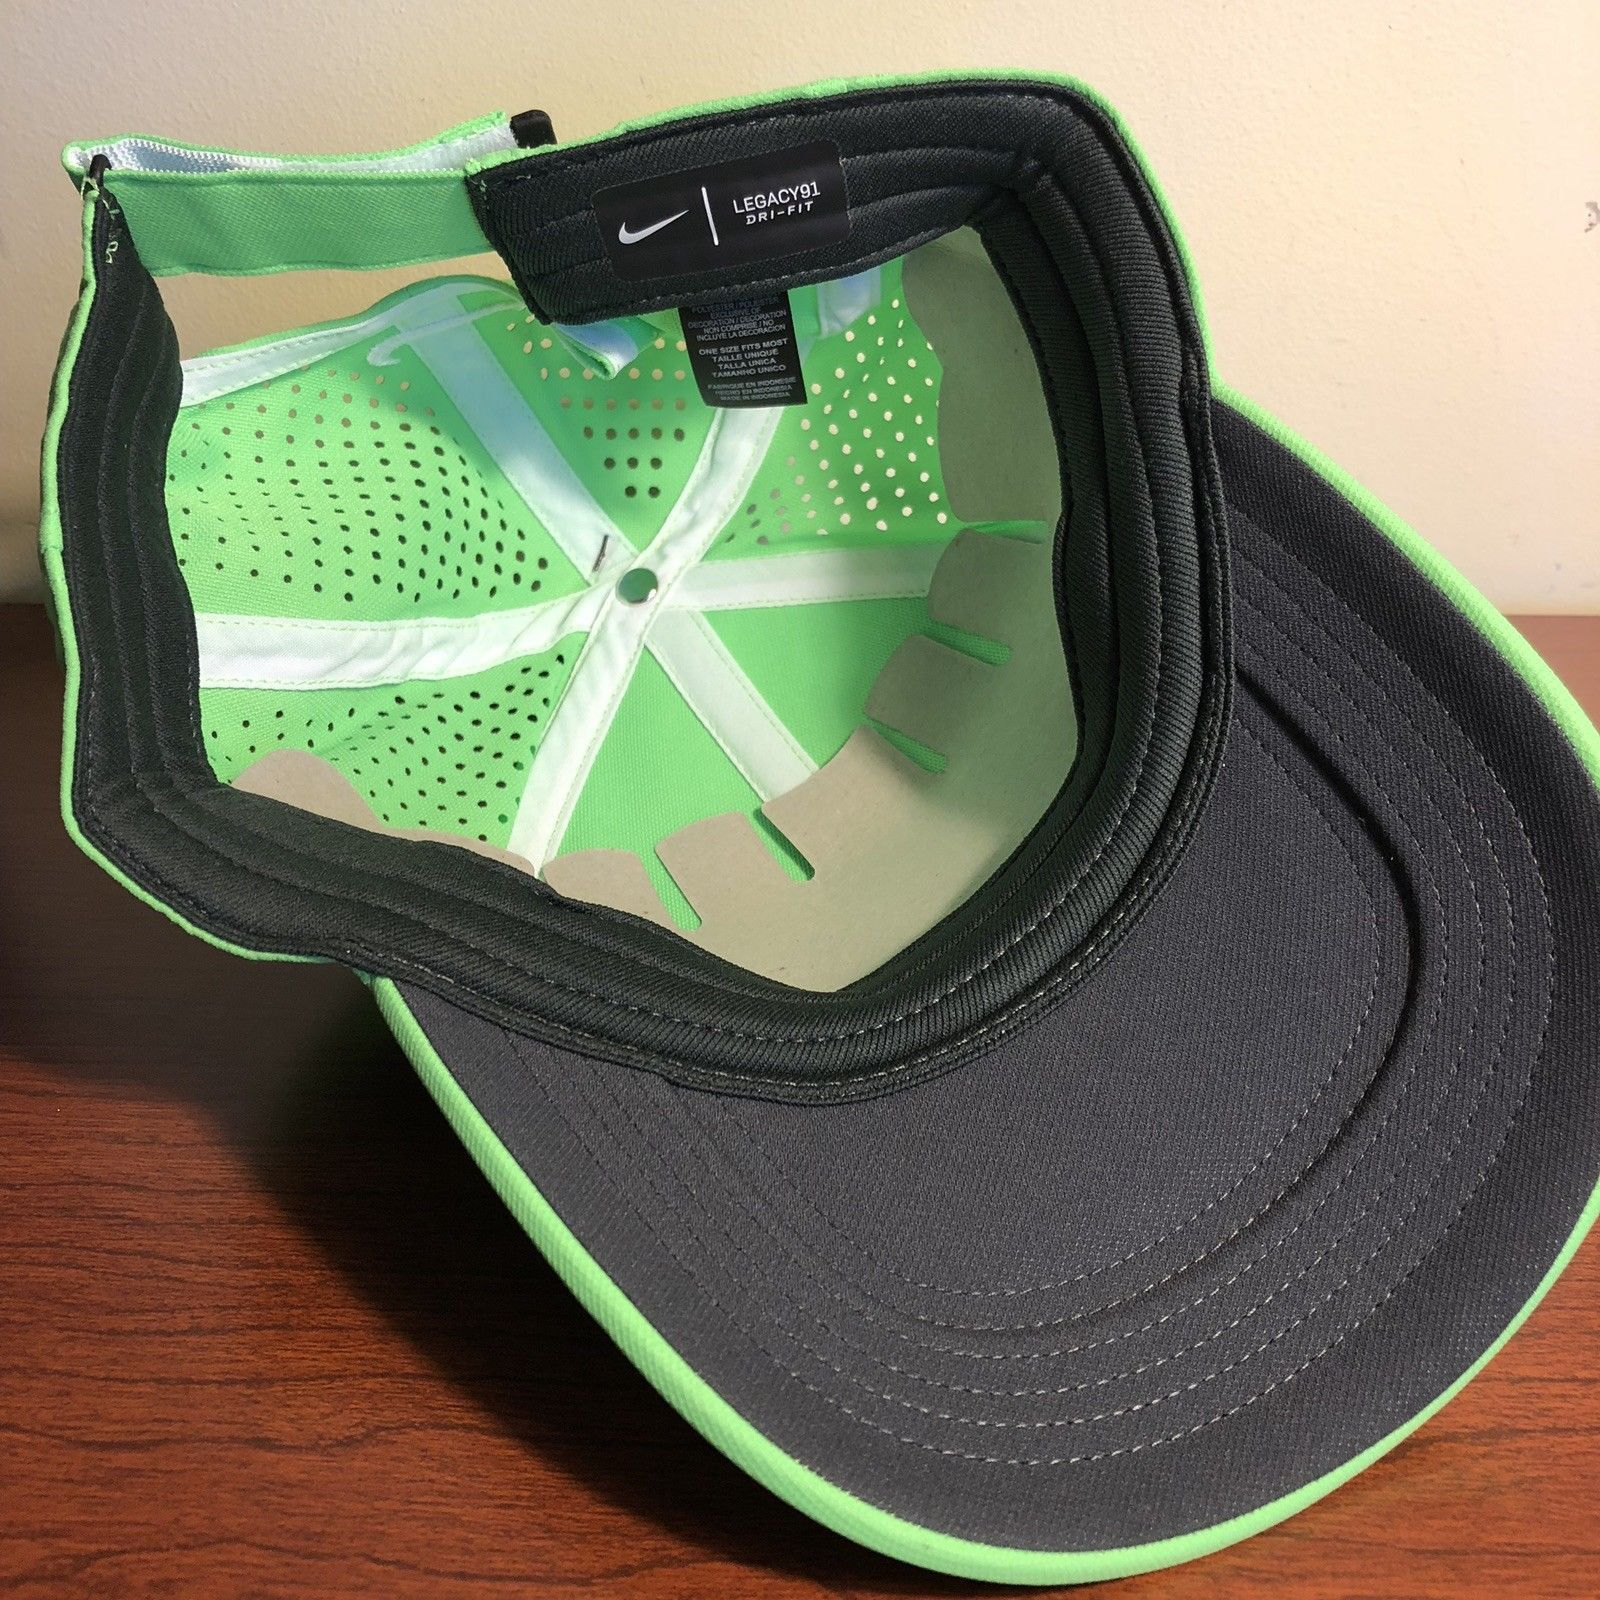 63cc411bca0c7 NWT- Nike AeroBill Perforated Lime Green White Swoosh Adjustable Golf Hat  Cap